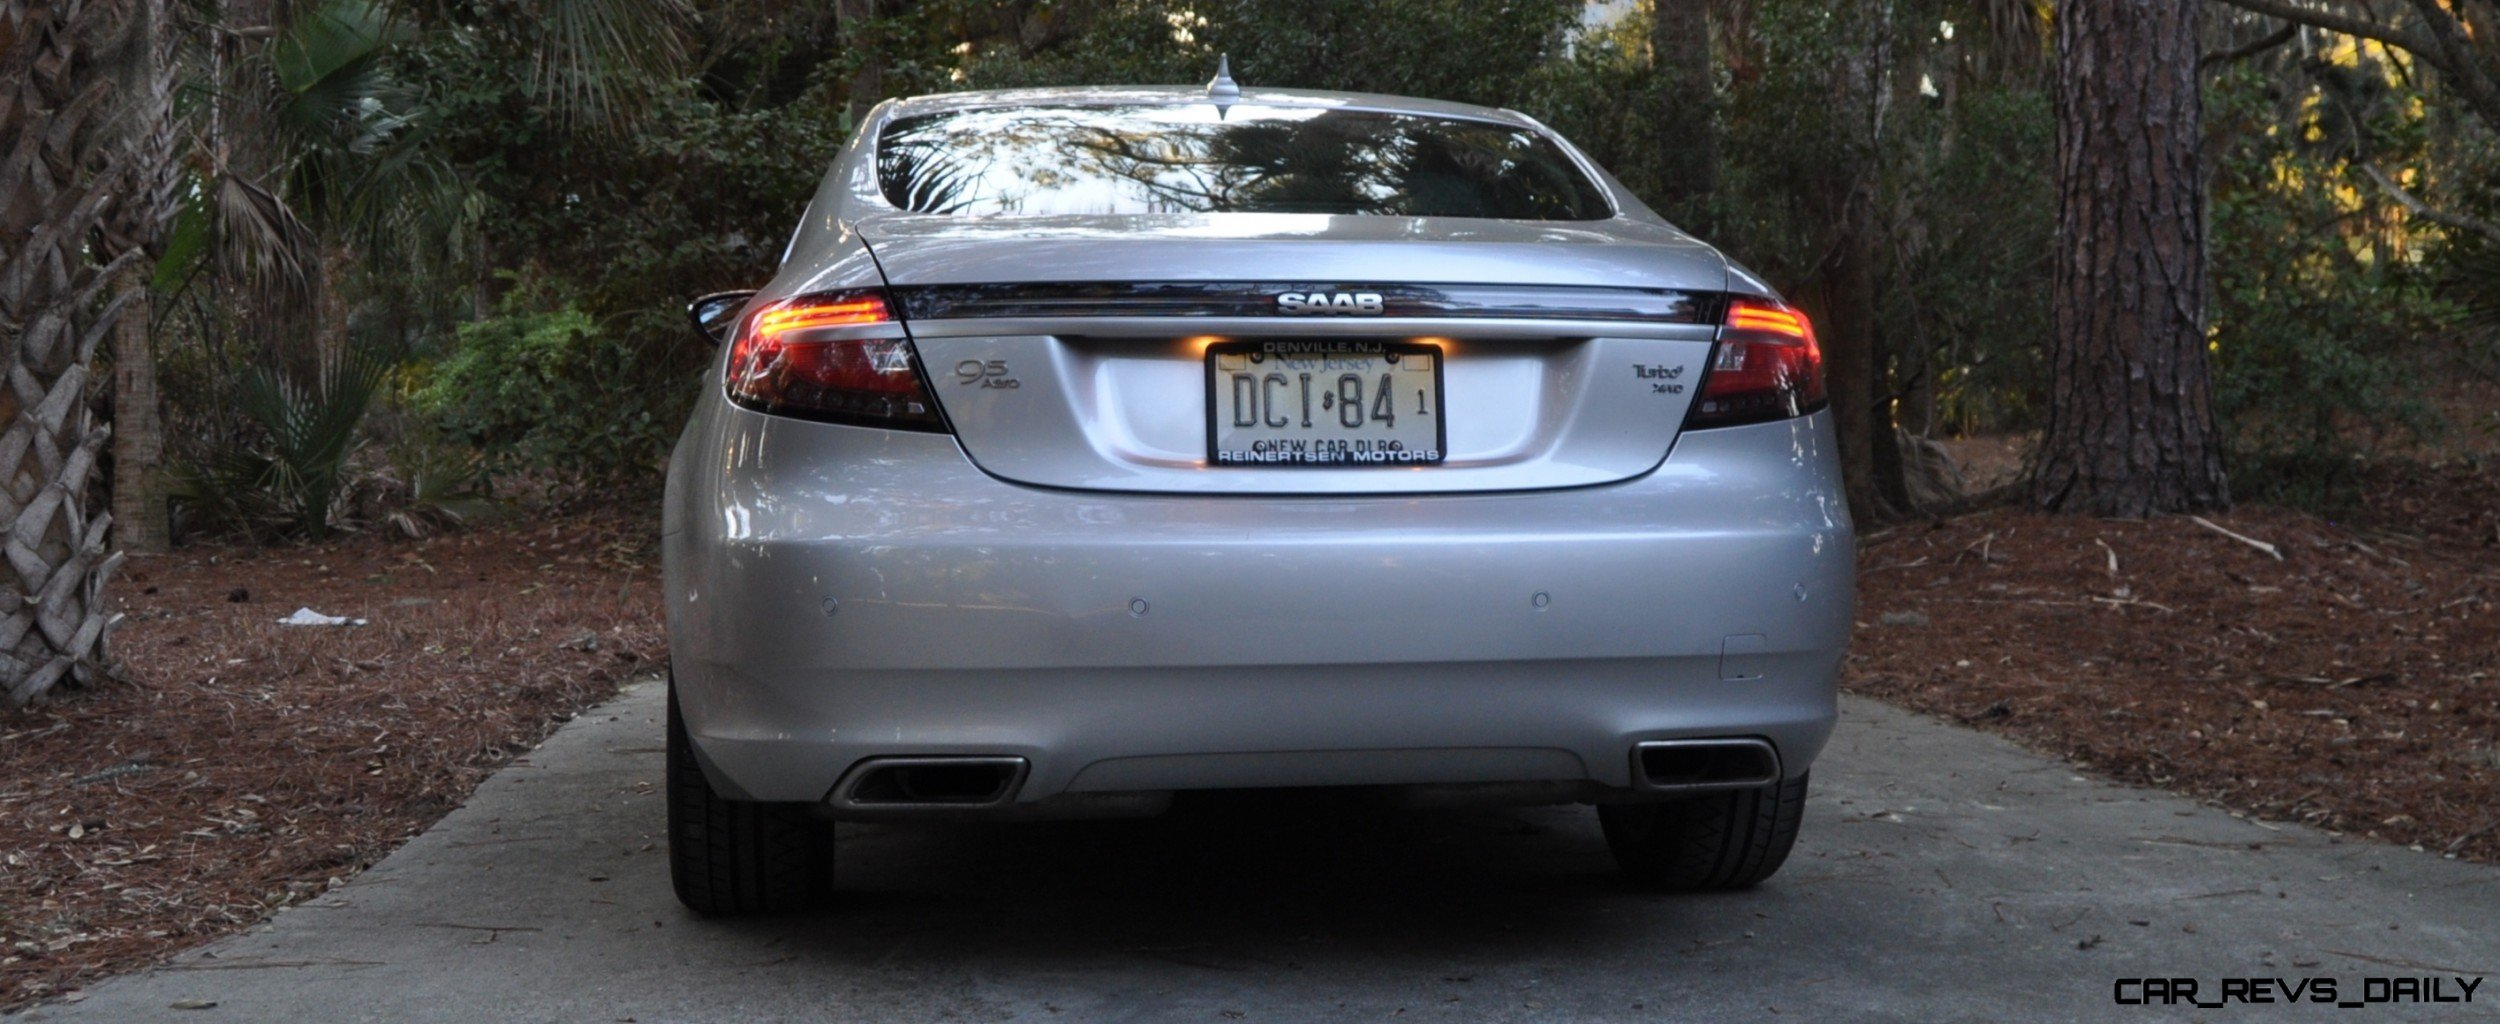 2013 SAAB 9-5 Turbo6 XWD Aero -- 48 HQ Photos -- The Coolest AWD, Turbo V6 Limo You Cannot Buy 13